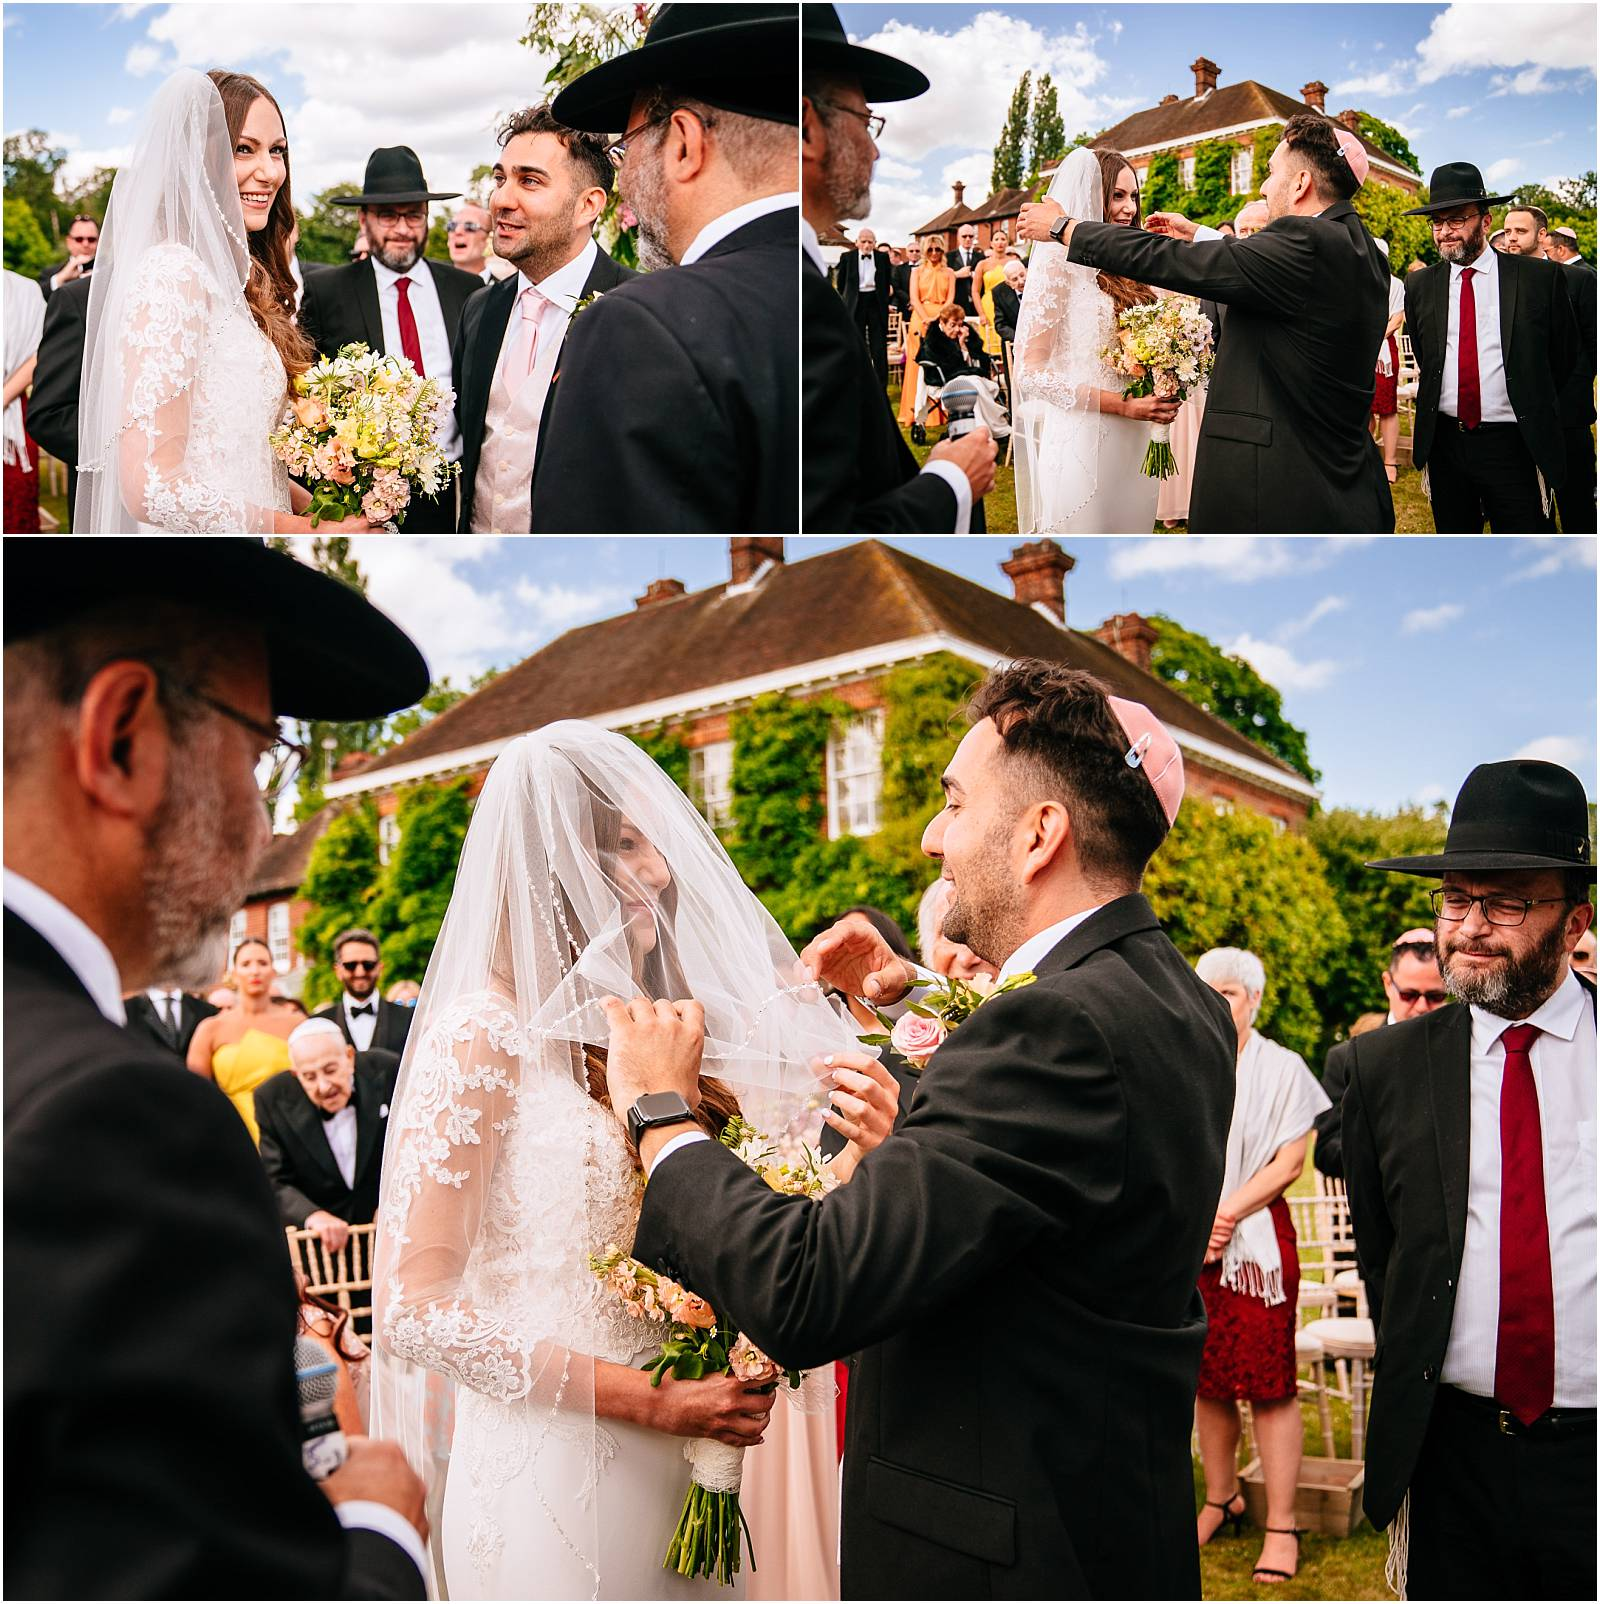 bedecken during jewish wedding ceremony